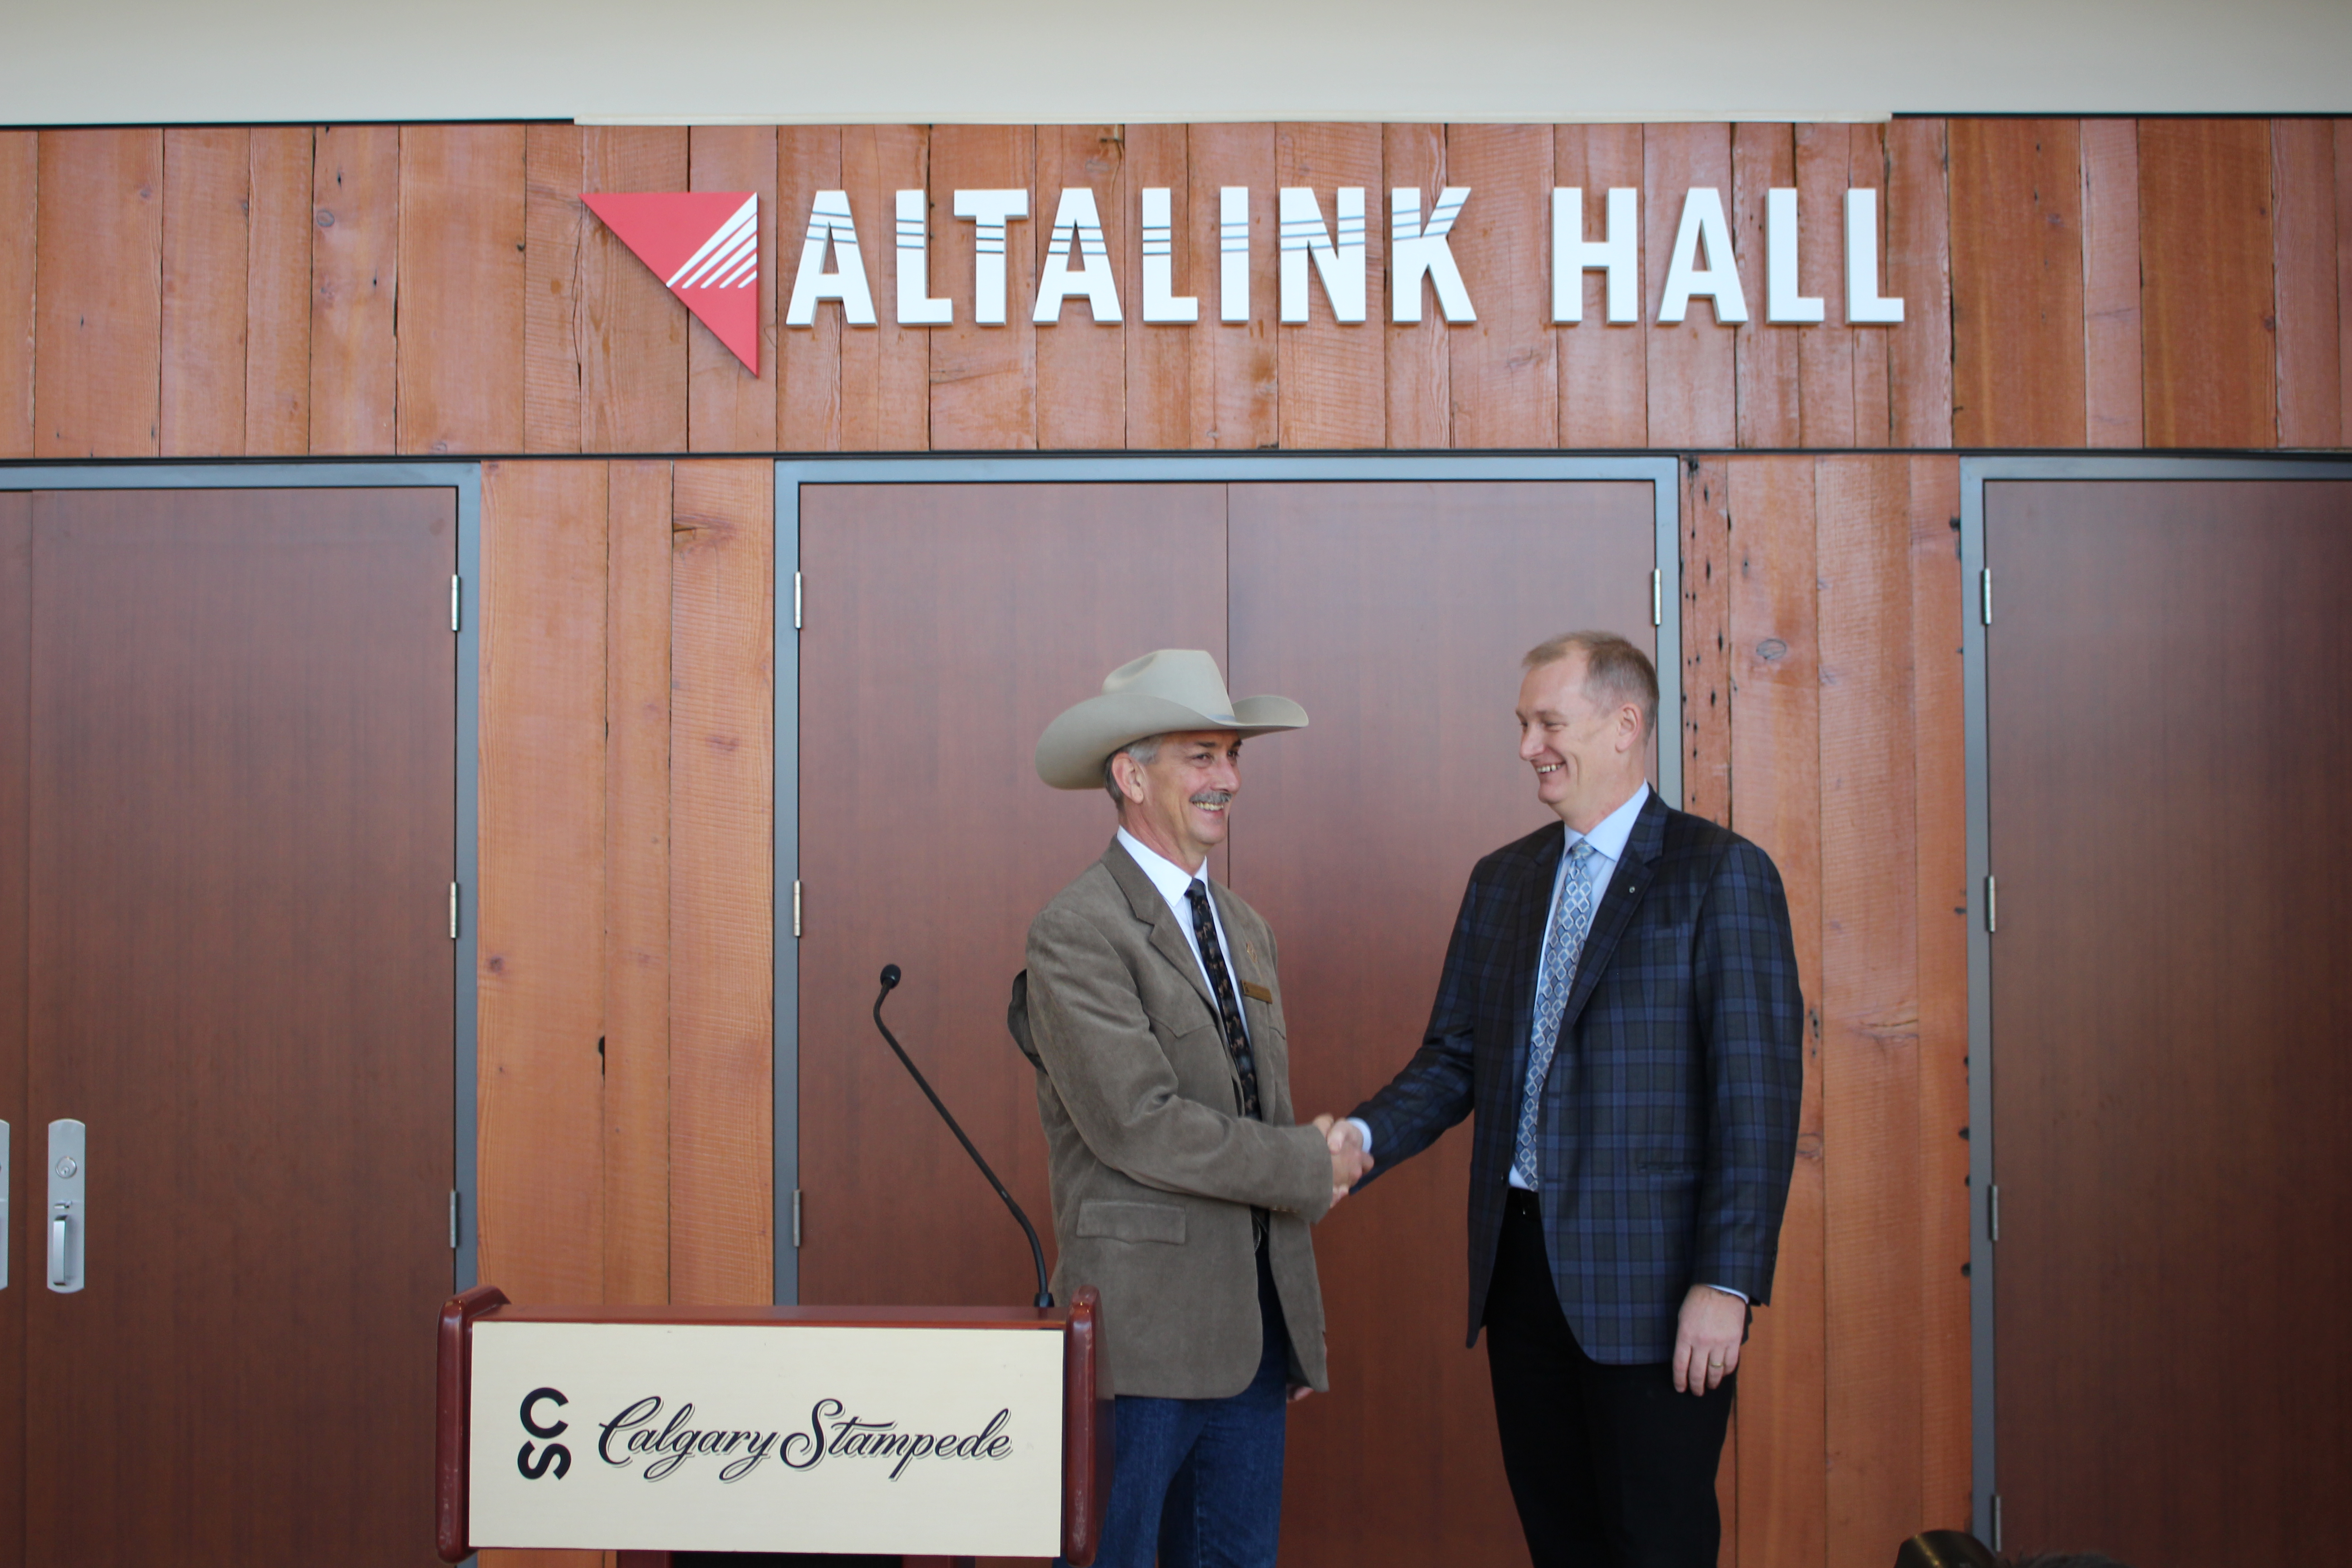 Newly Named Altalink Hall Home To Annual Farm Safety Day